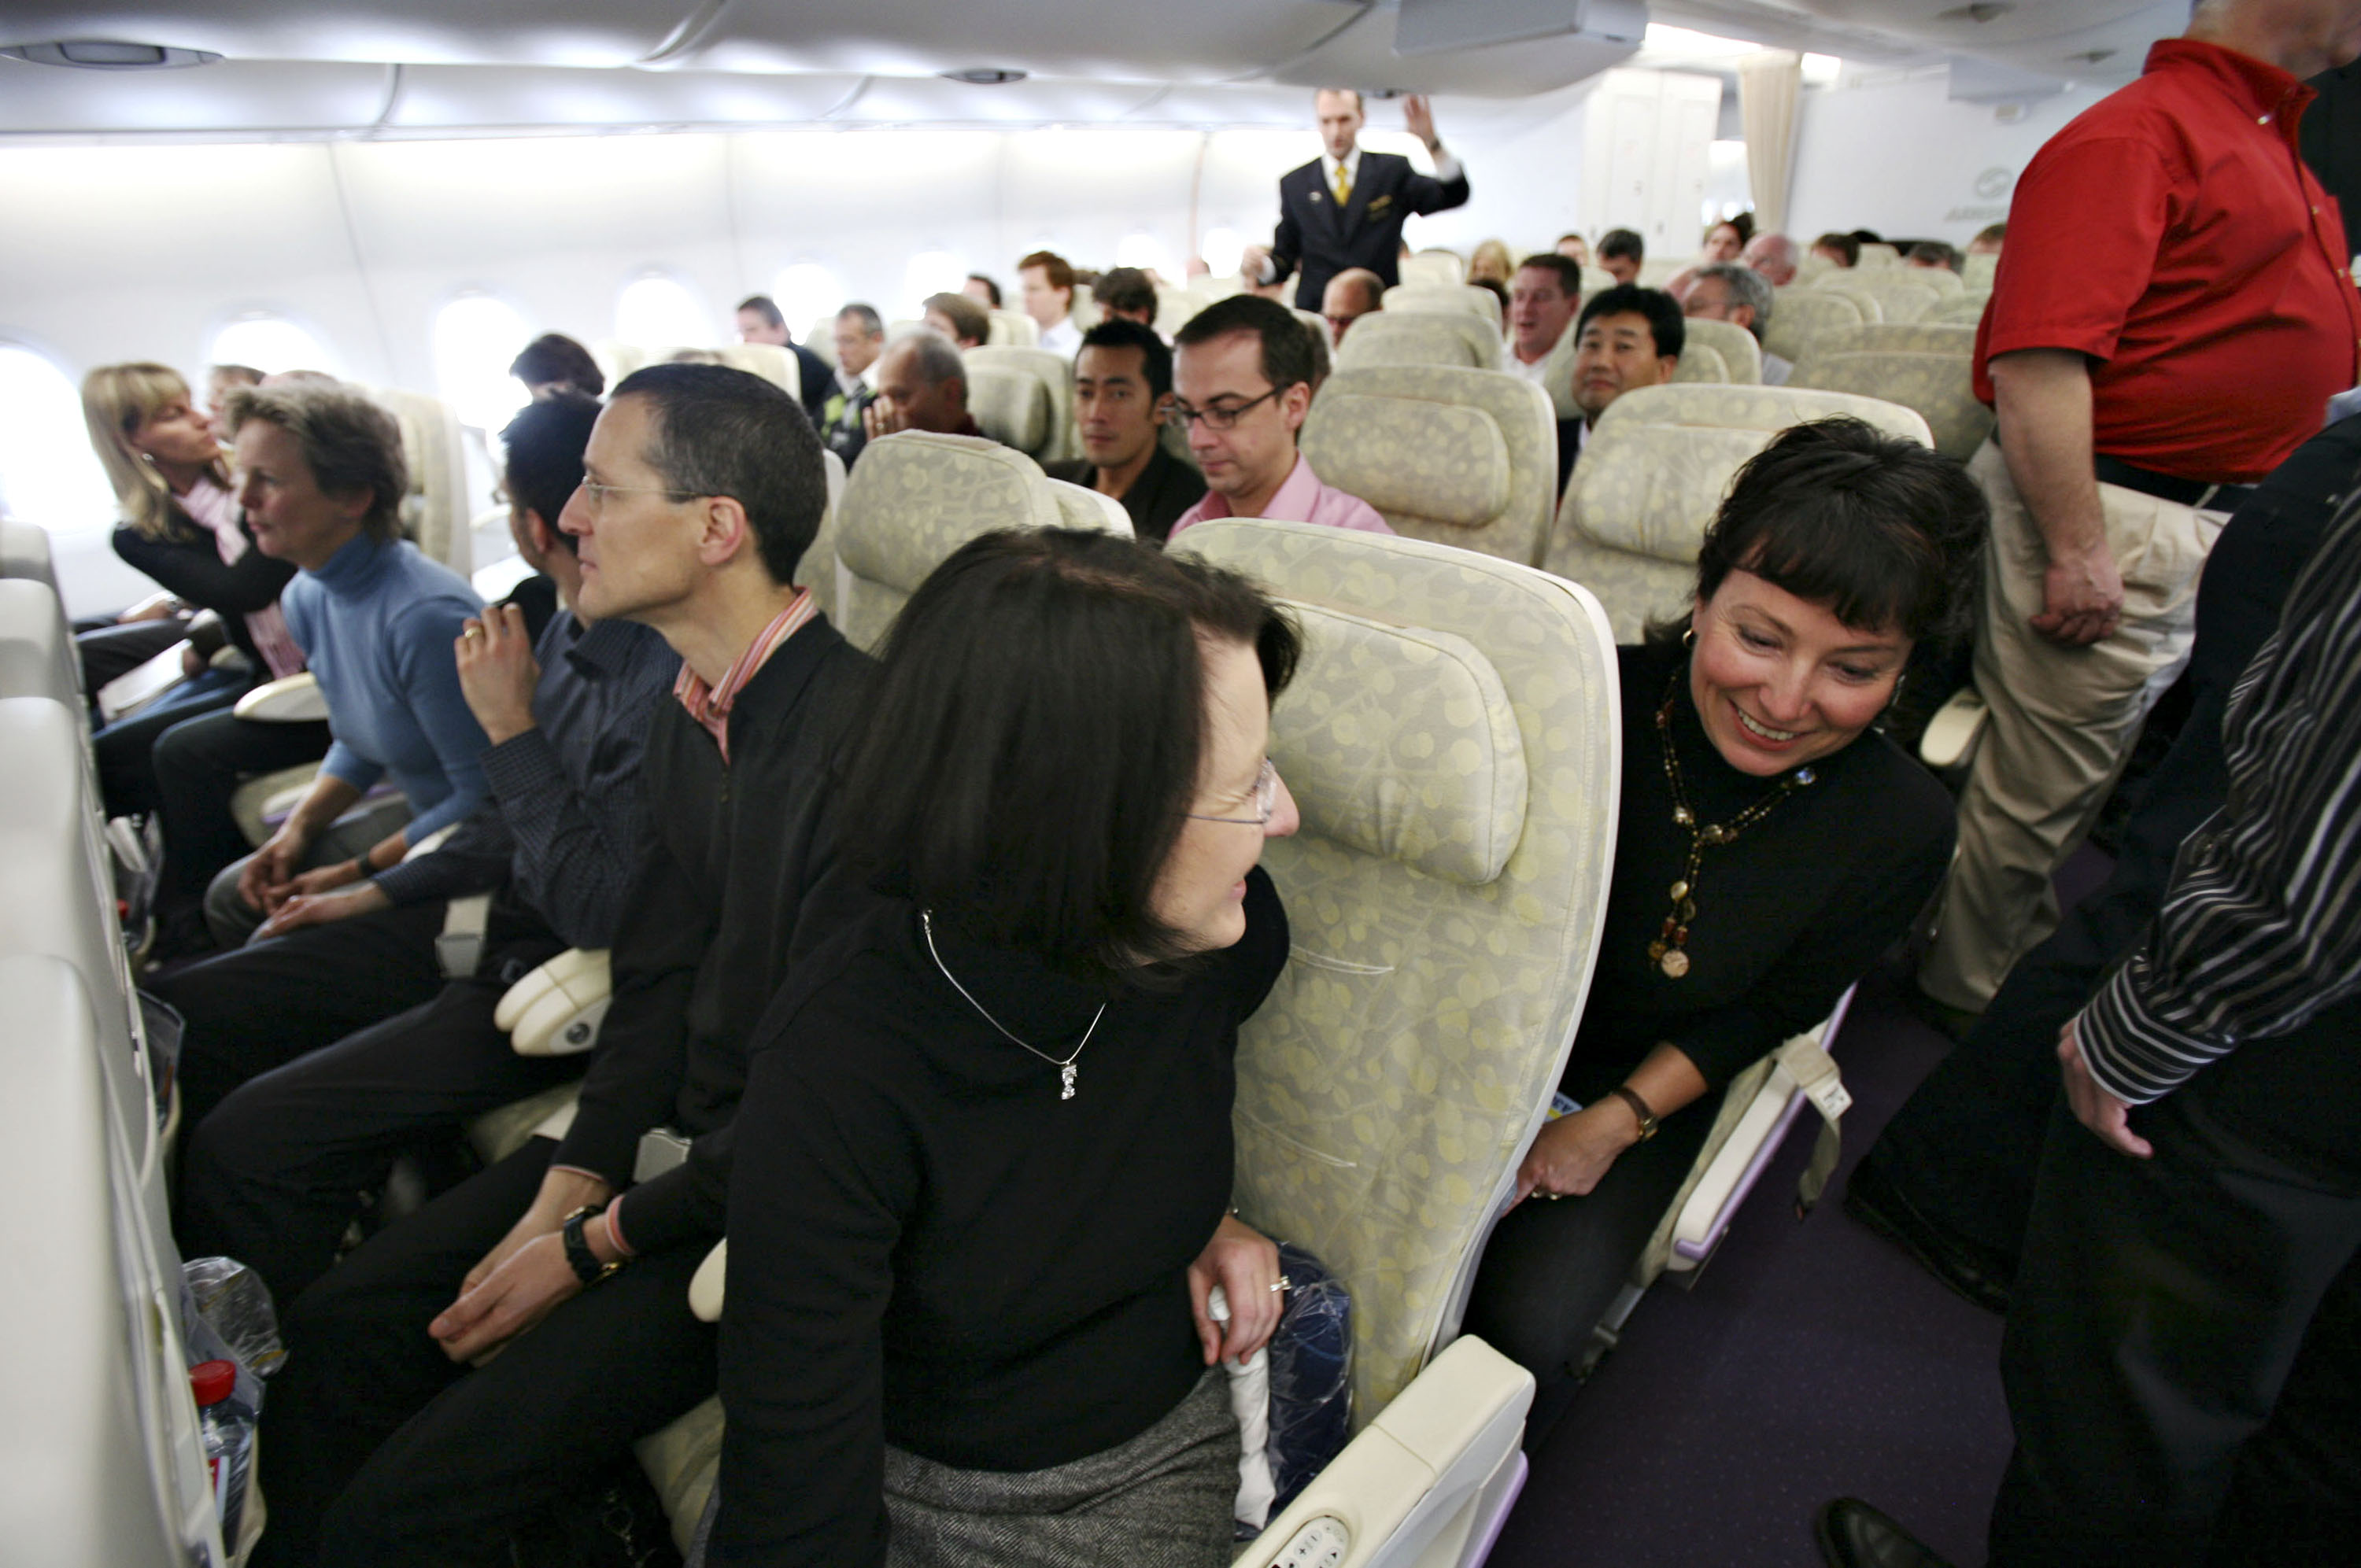 20 most rude and annoying things passengers do on planes